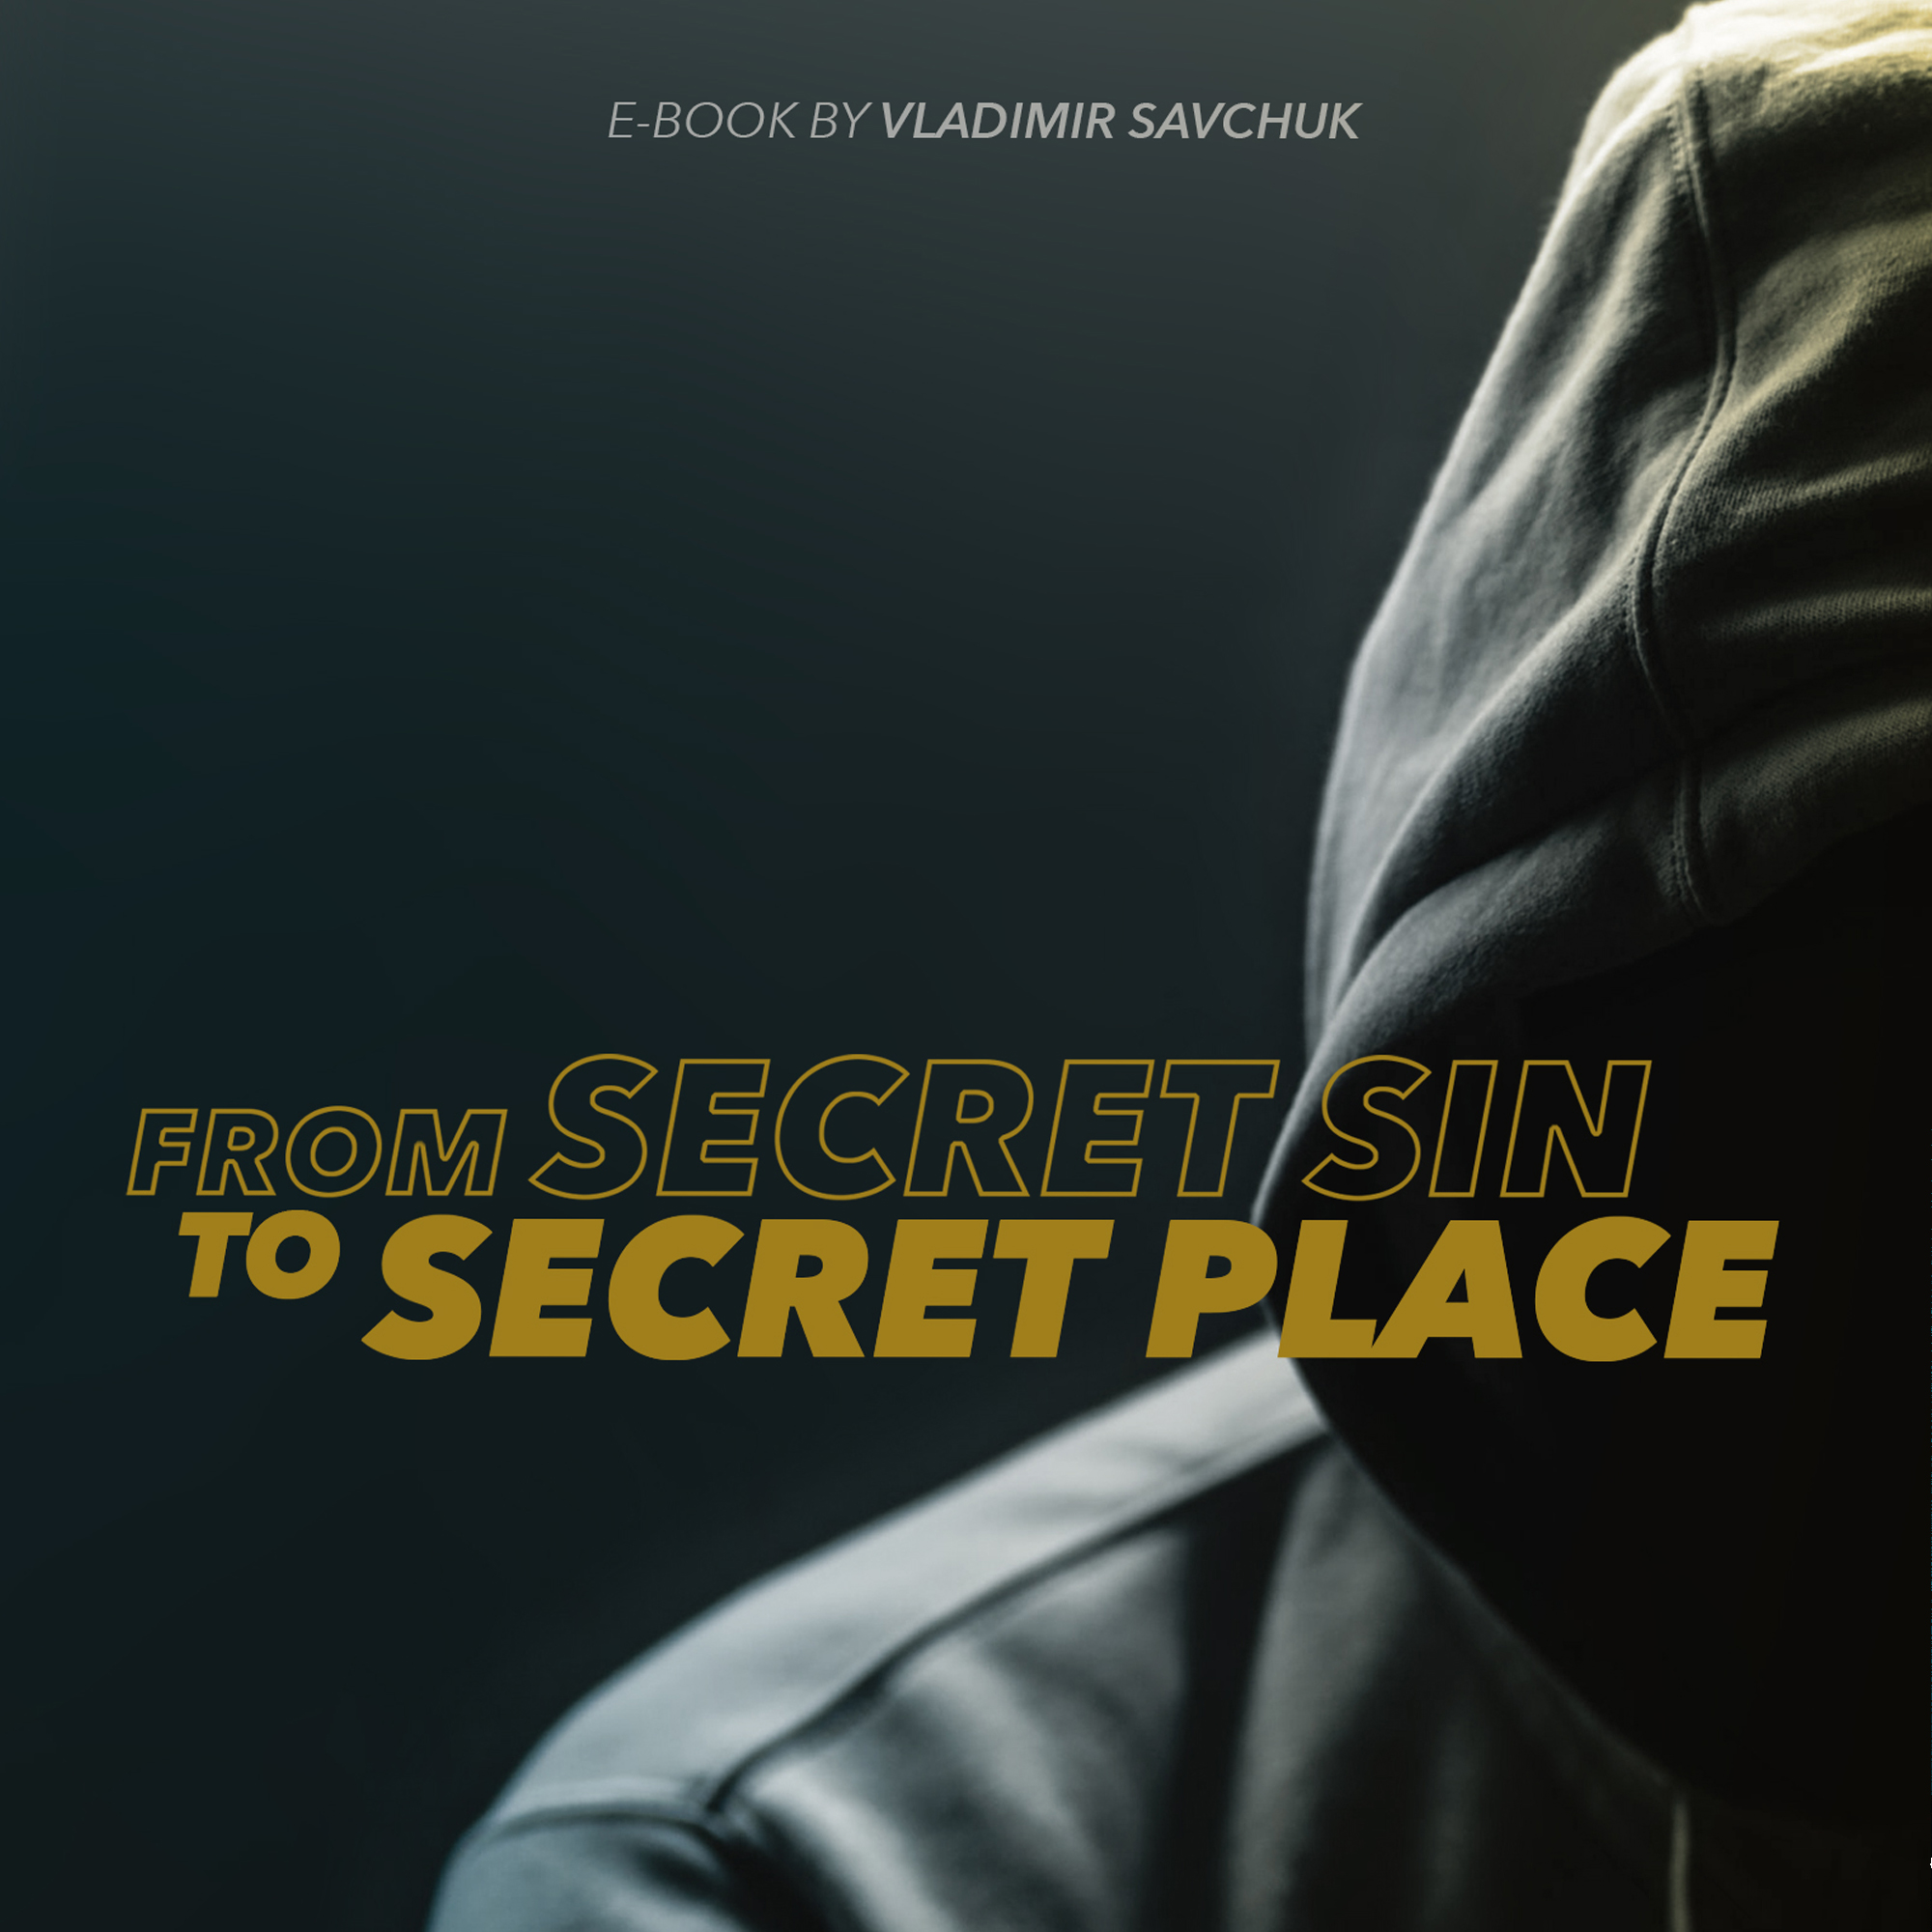 https://vladimirsavchuk.com/resources/from-secret-sin-to-secret-place/